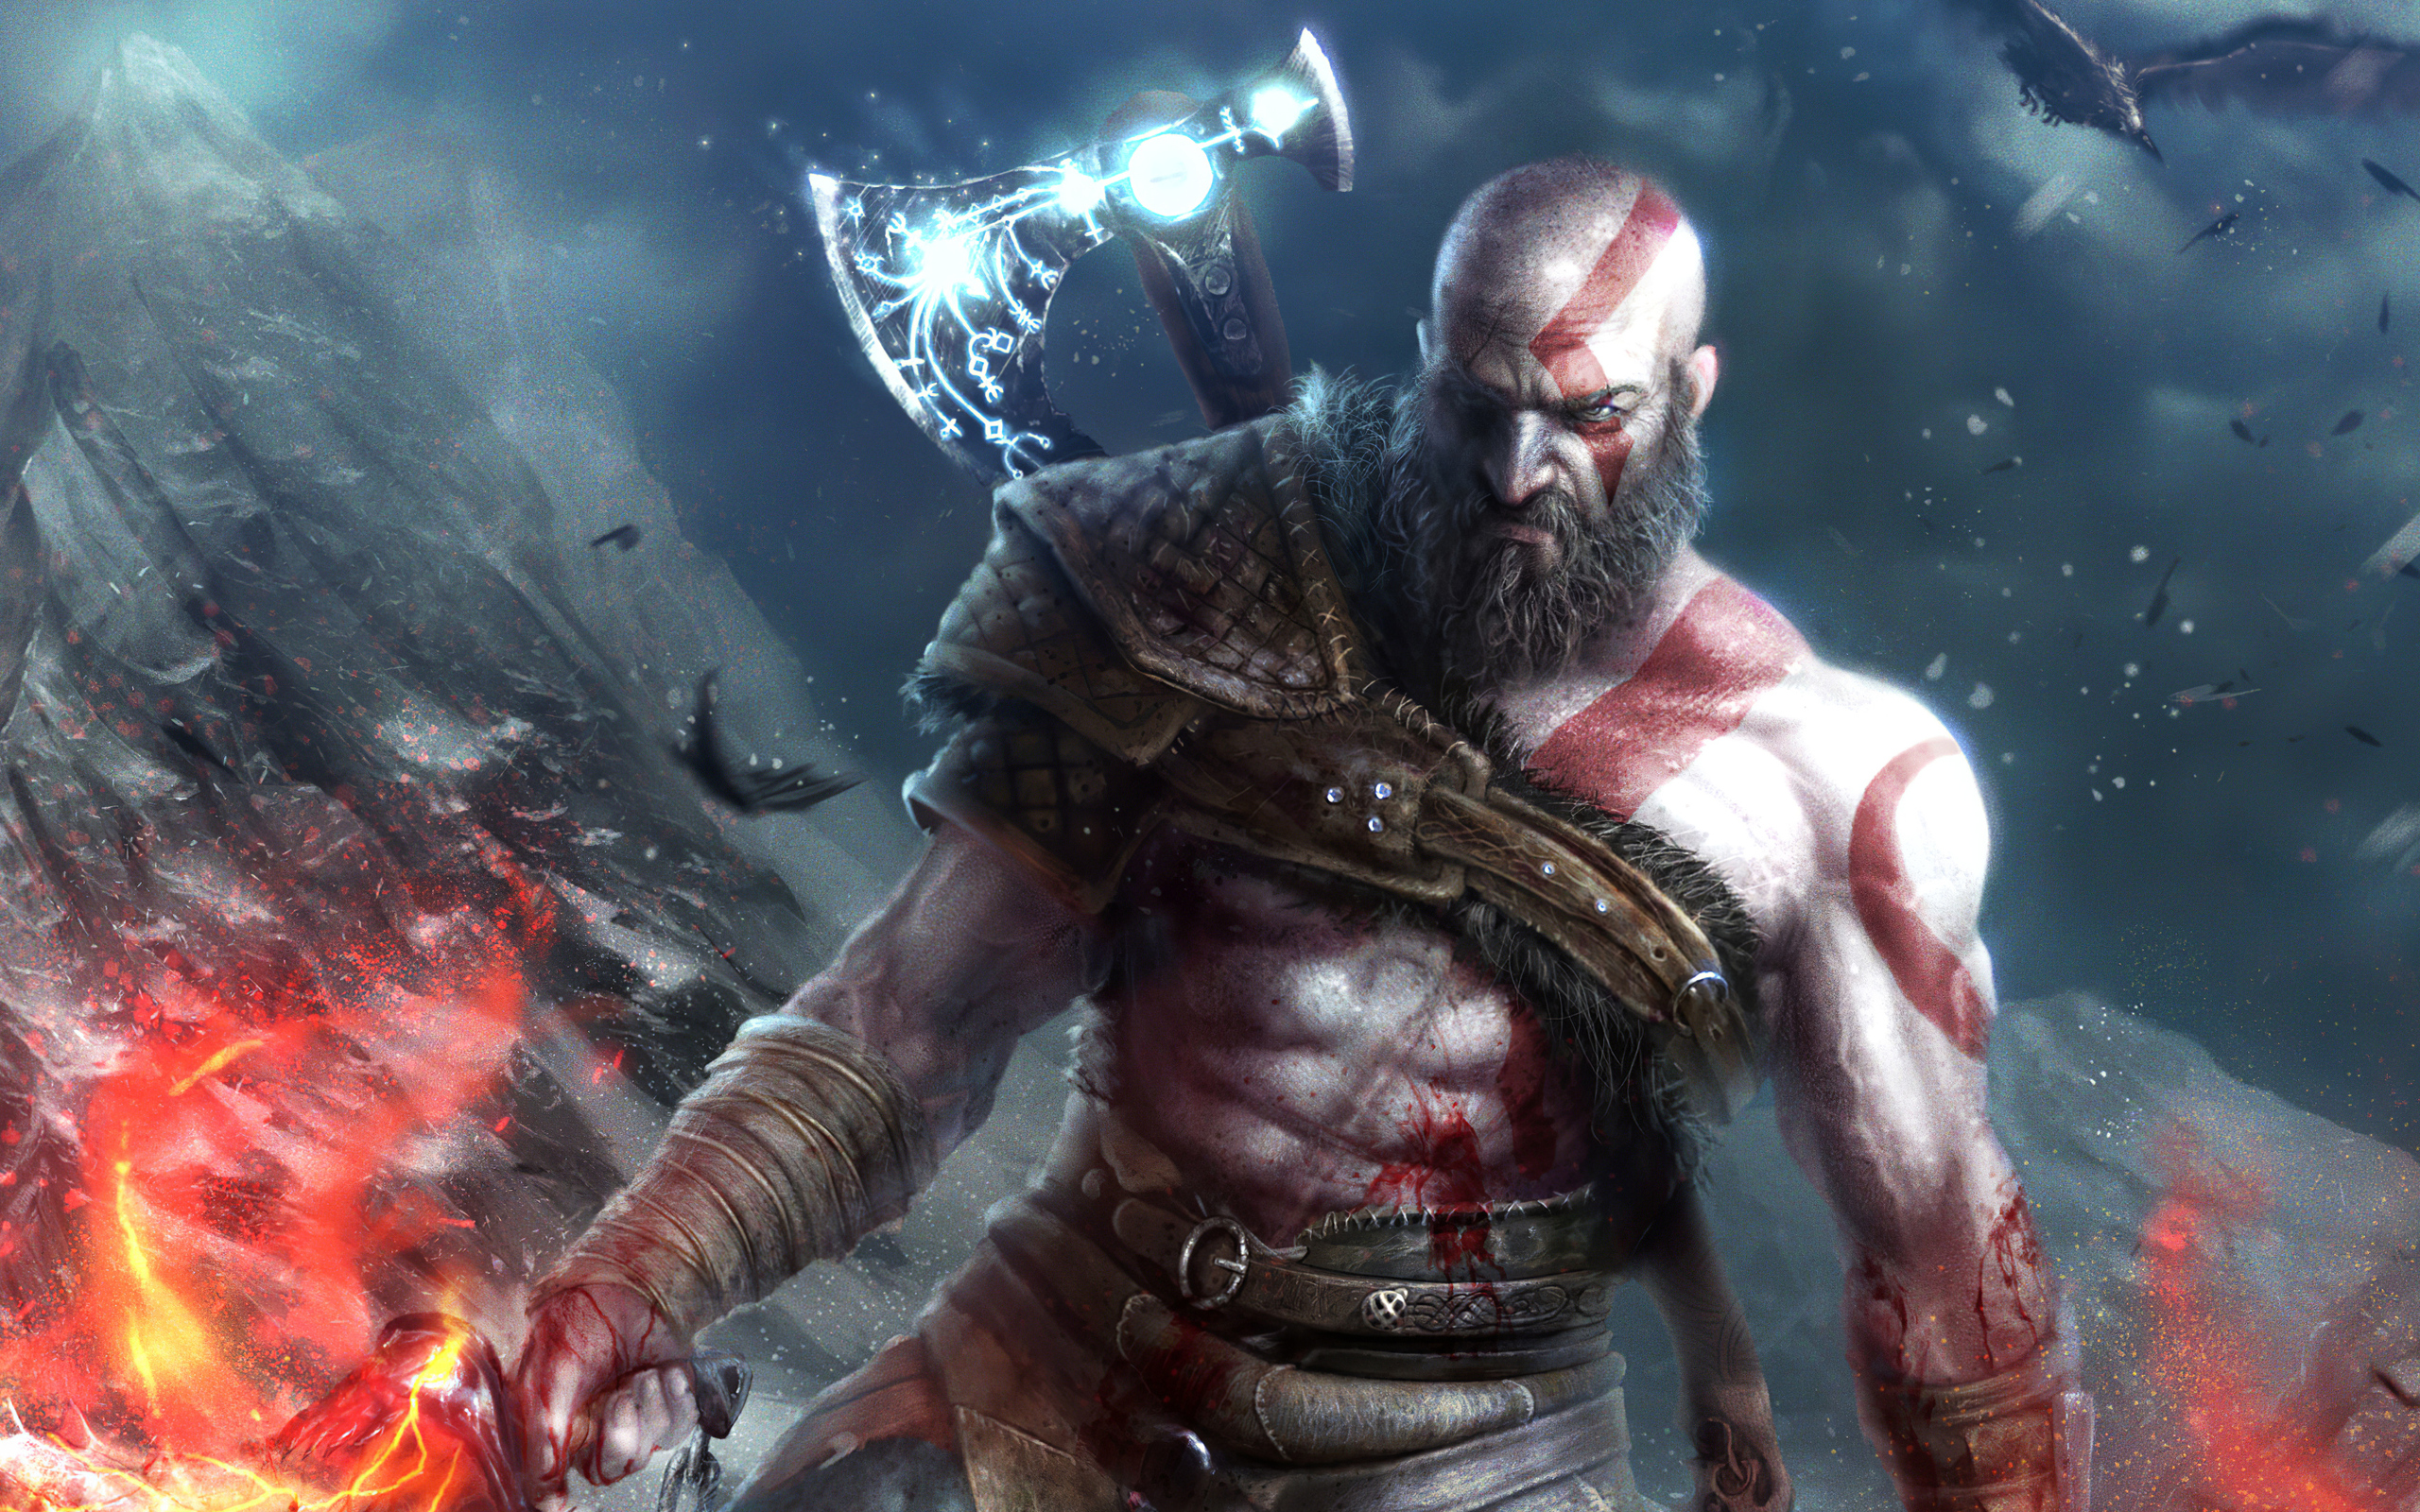 kratos-god-of-war-art-4k-yk.jpg